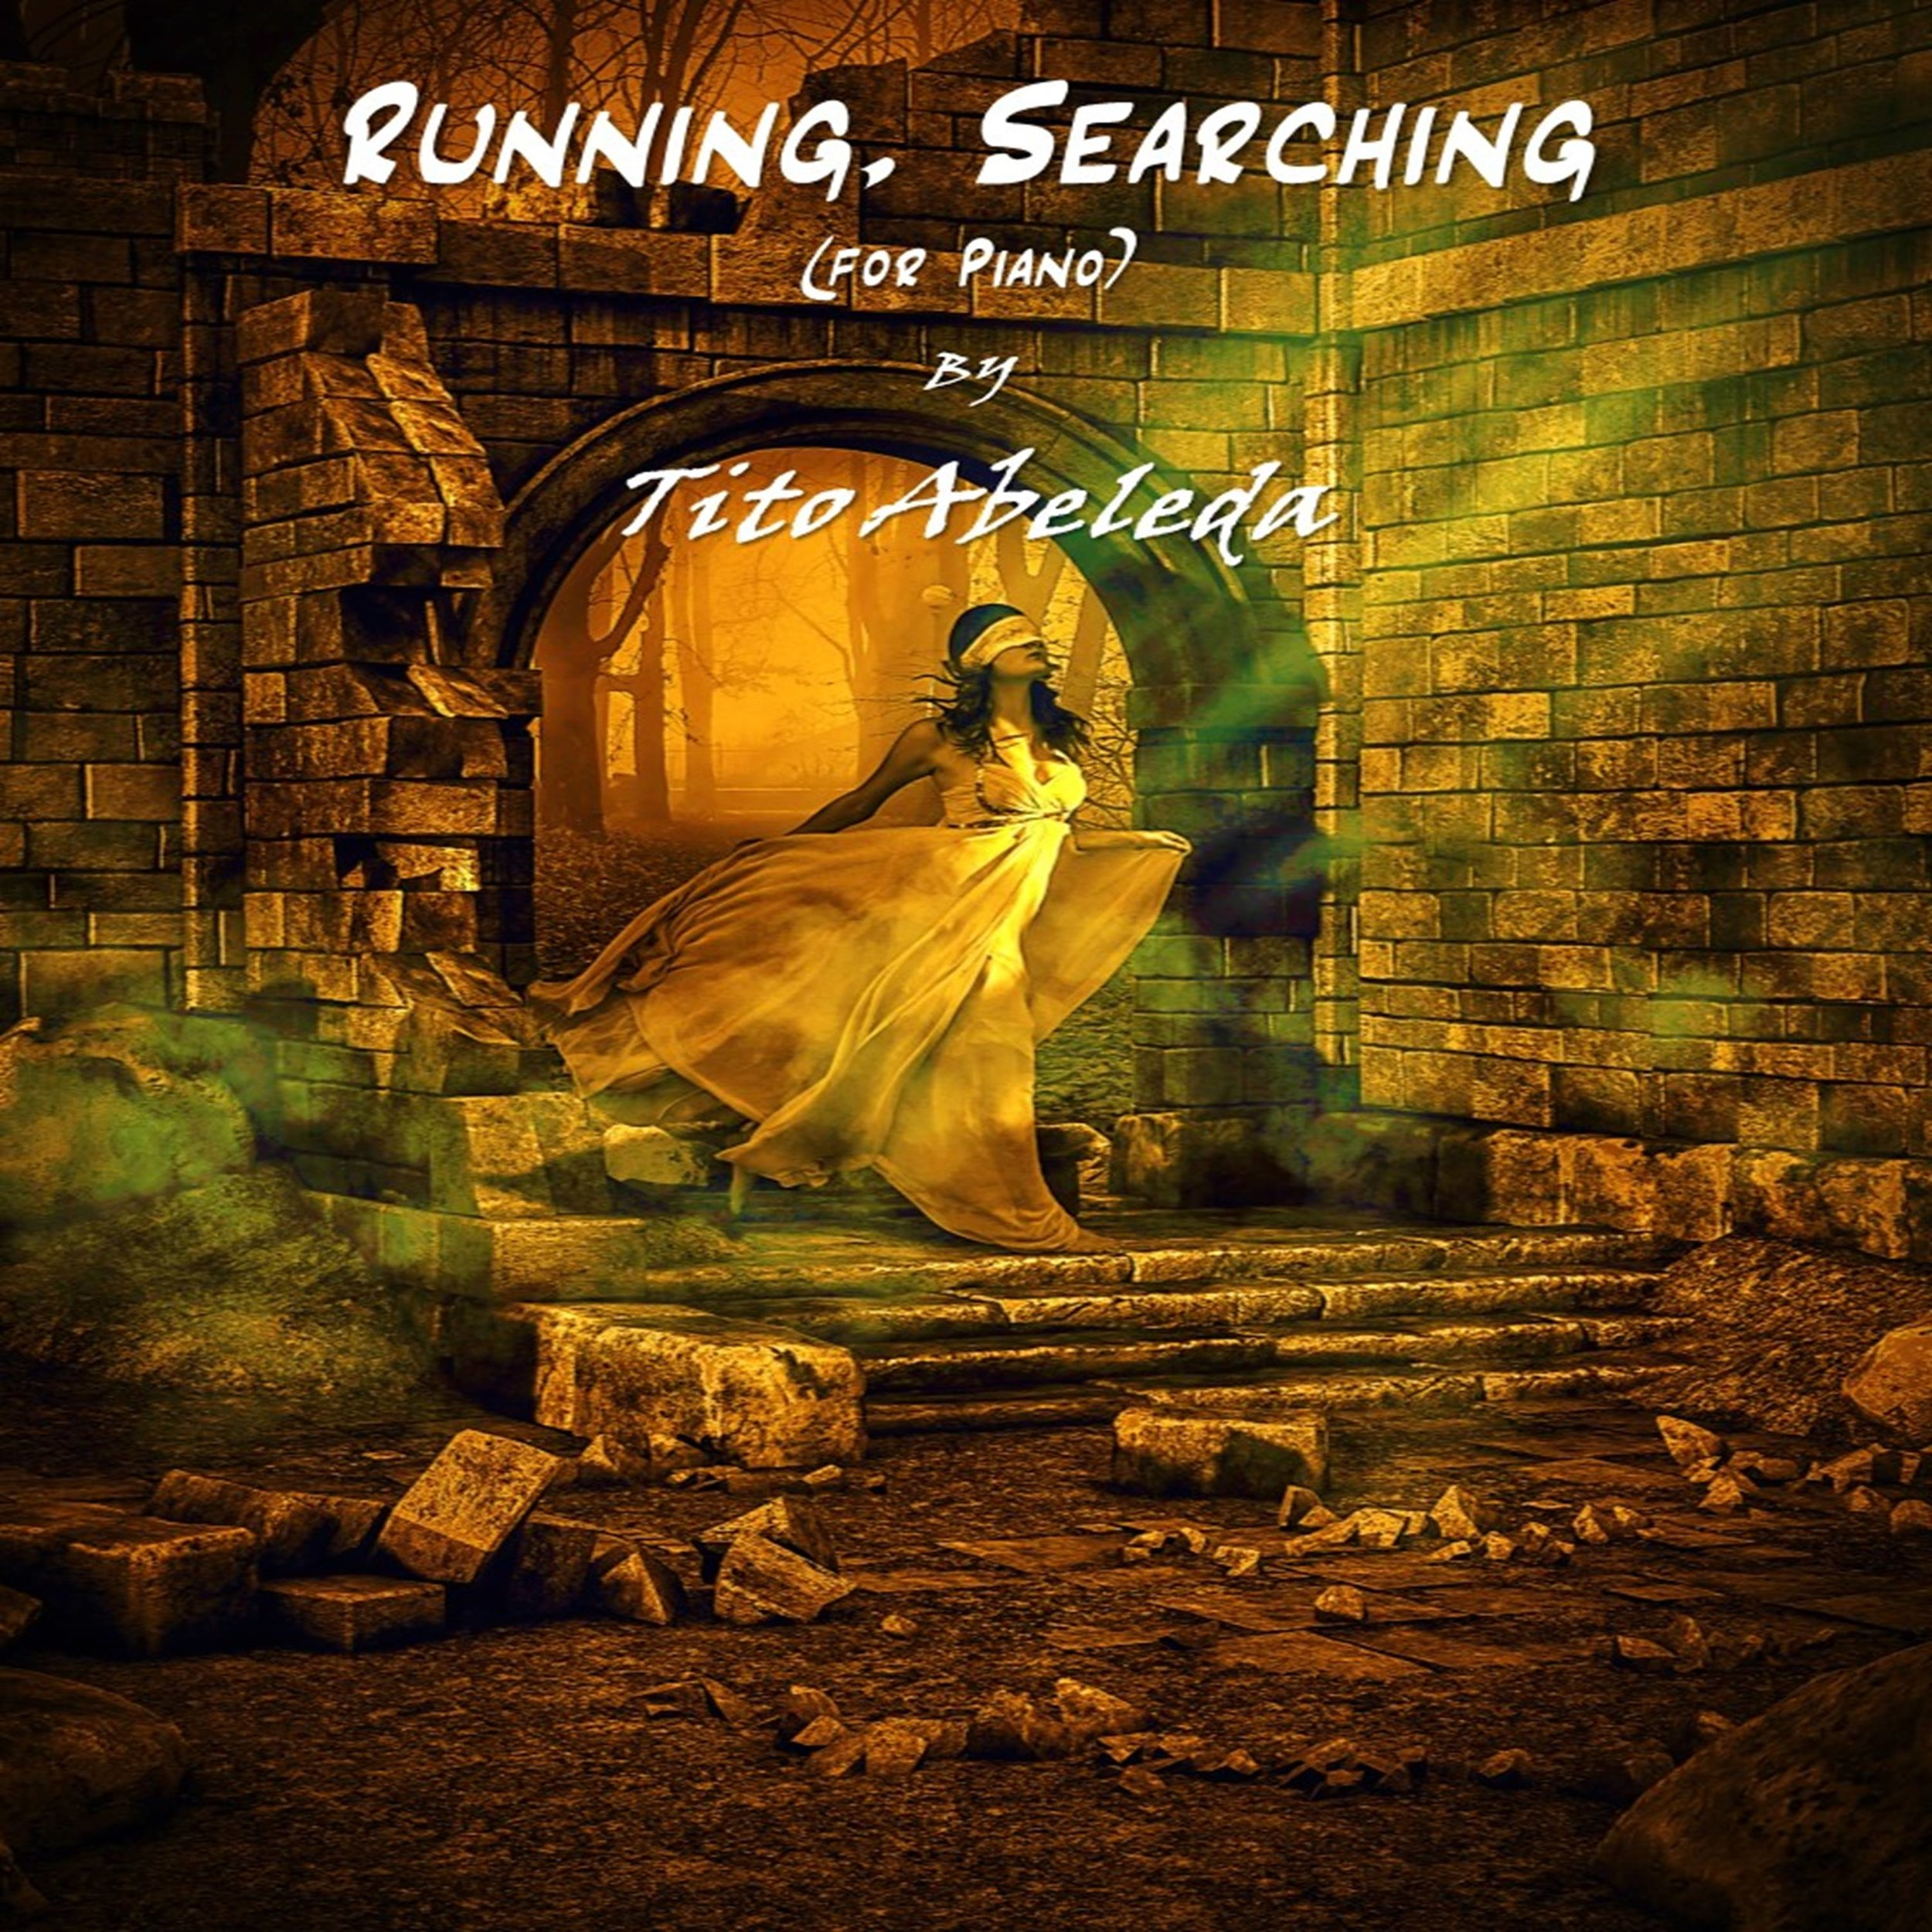 Running, Searching (for Piano)